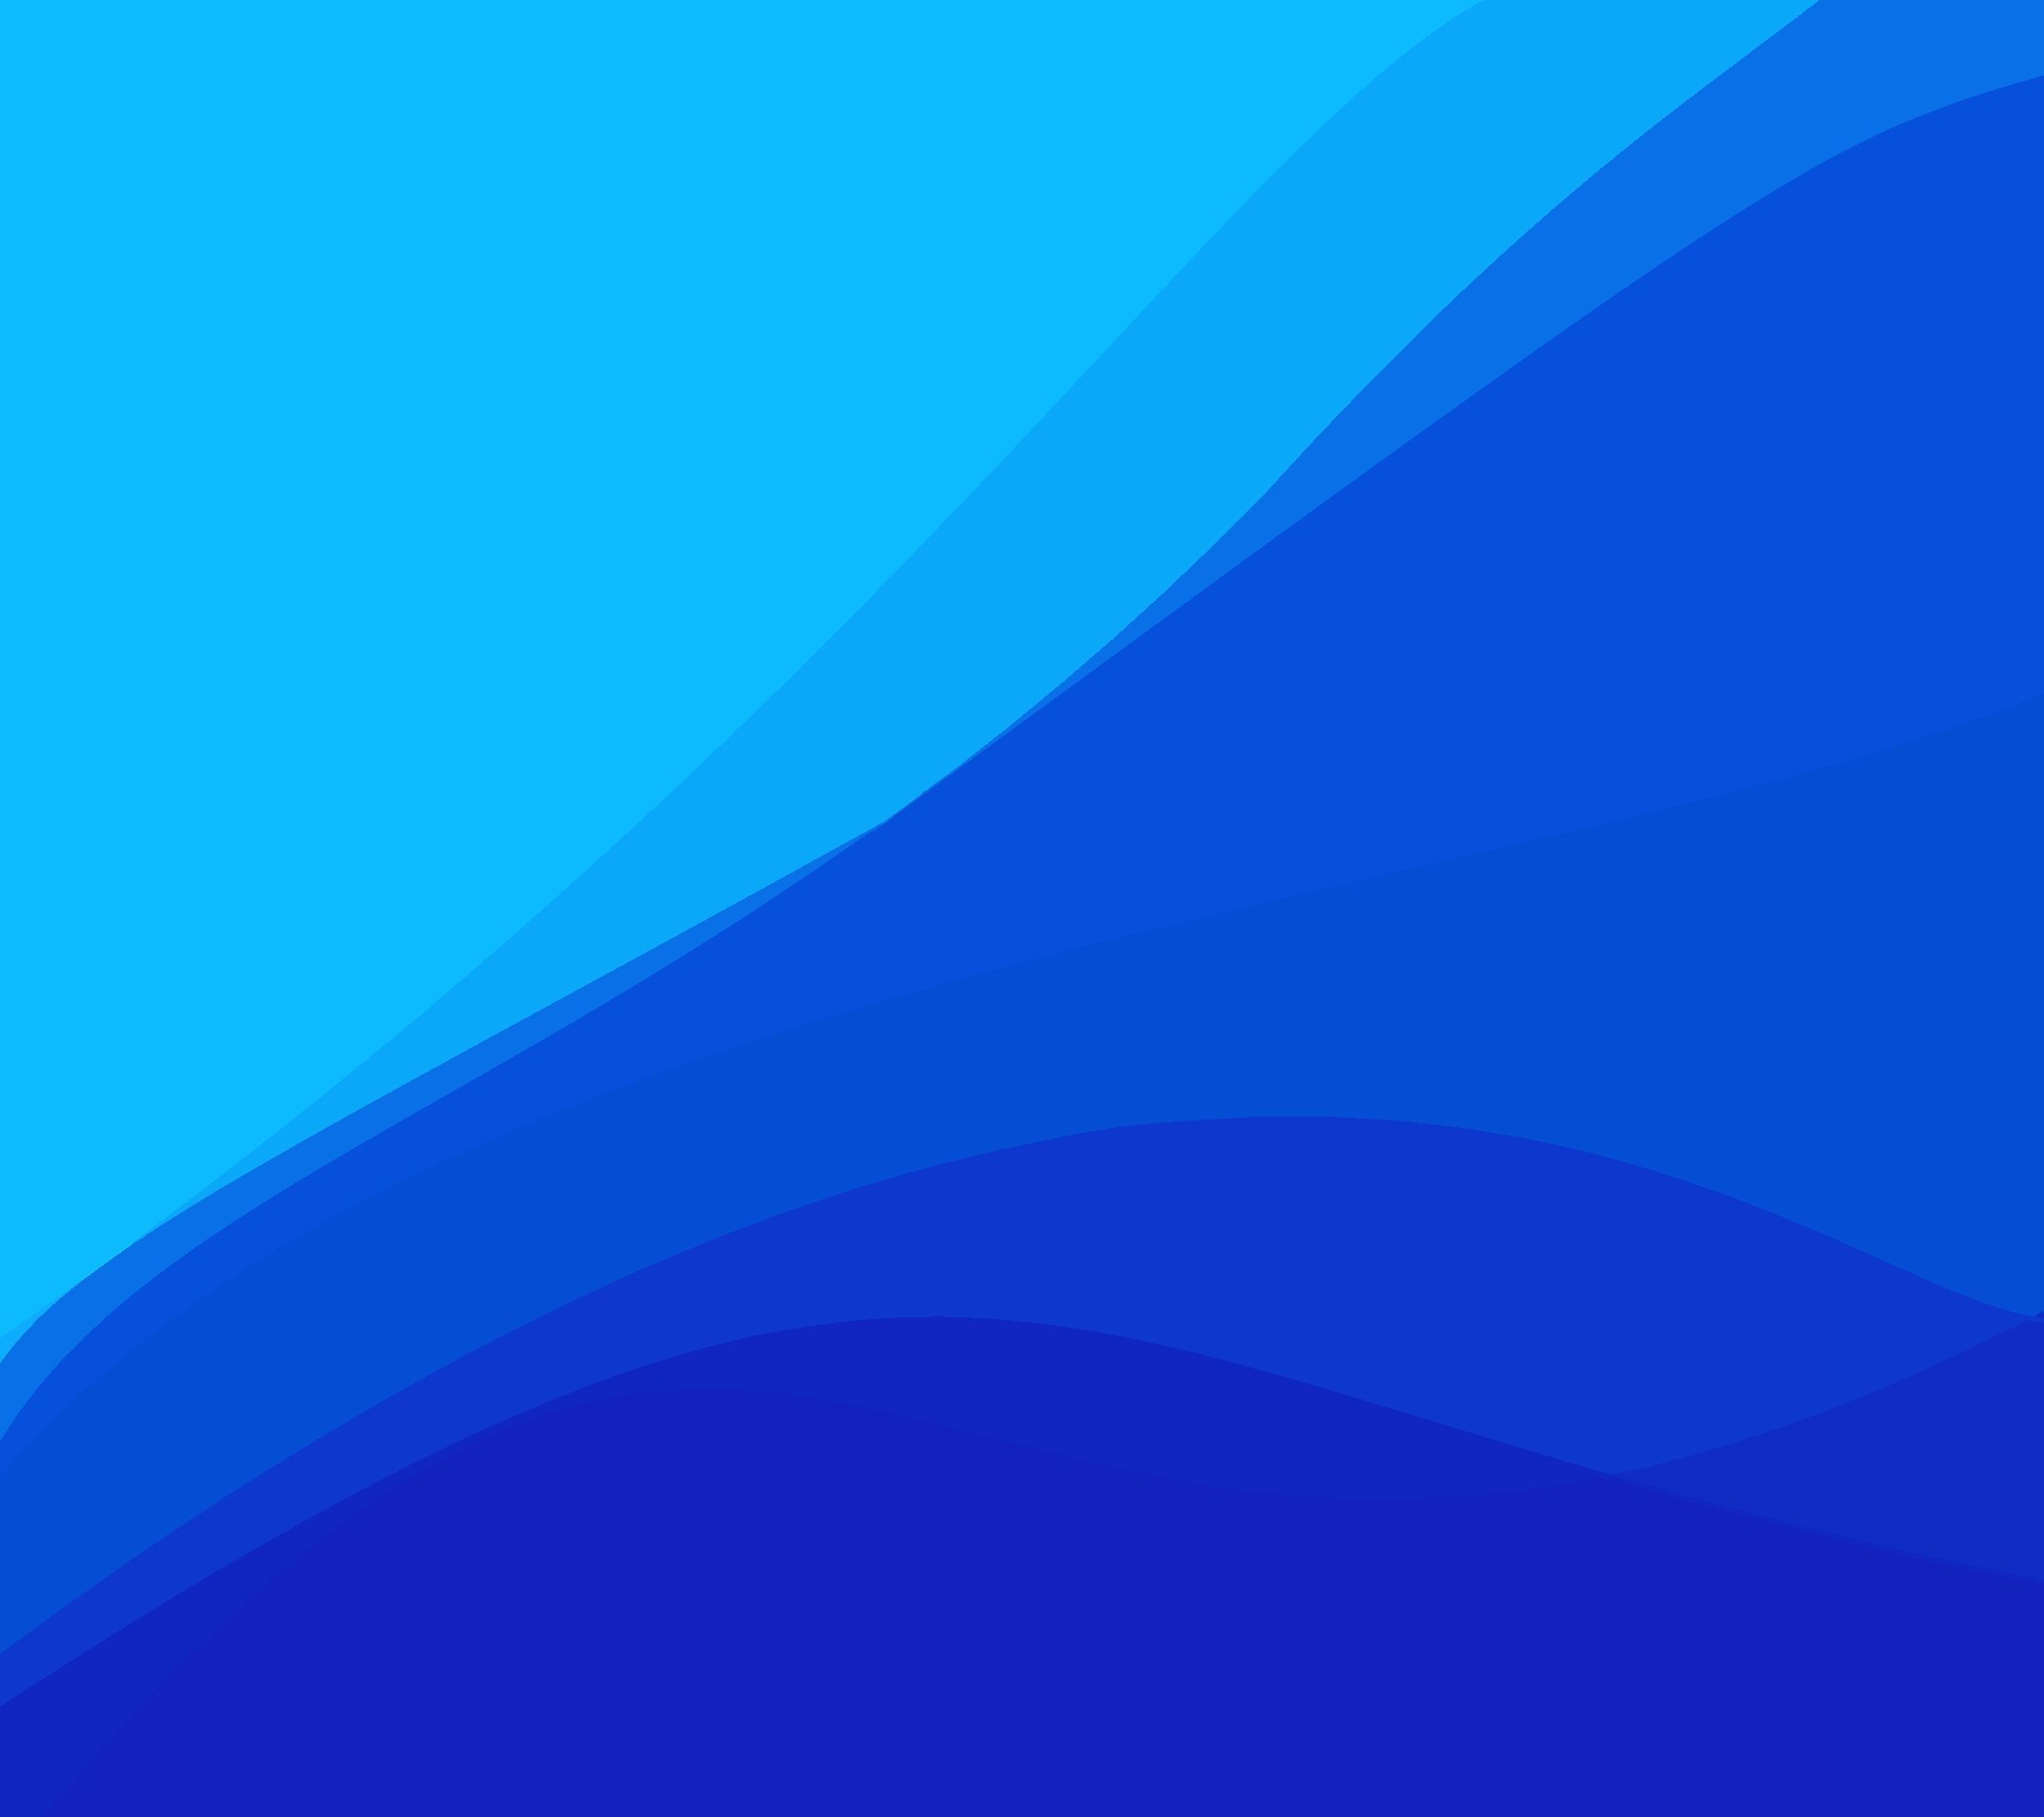 Hd wallpaper xperia z3 - The Xperia Tablet Z3 Comes With 5 New Colorful Wallpapers In Full Hd